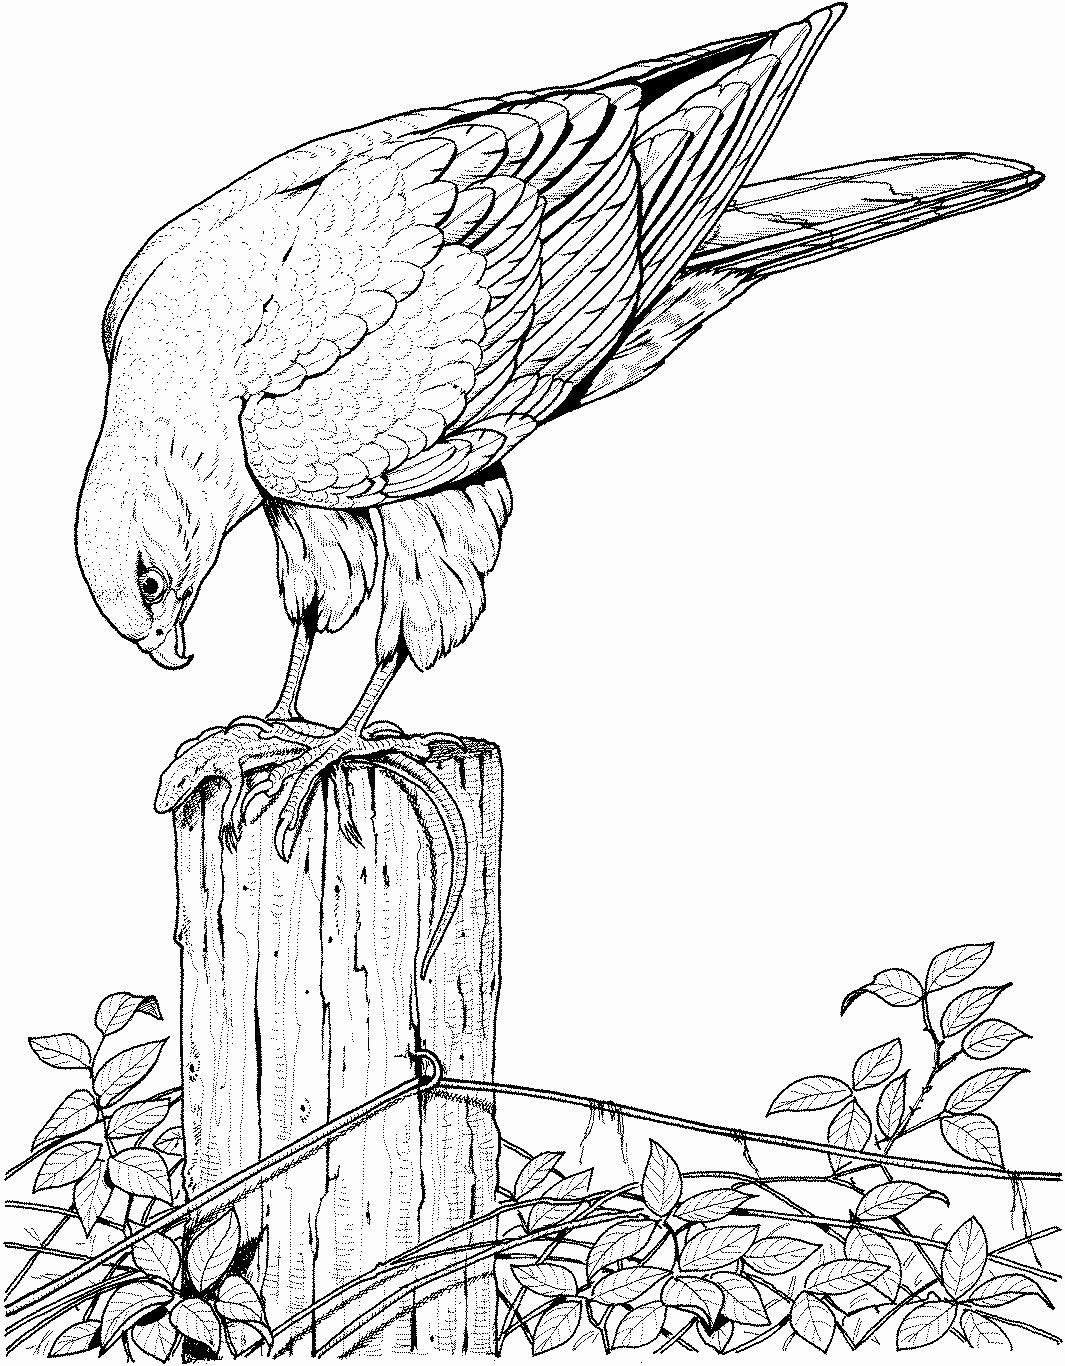 Coloring Pages For Adults Birds New Realistic Printable Drawing Pages Of Hawk In Hard Bird In 2020 Bird Coloring Pages Animal Coloring Pages Coloring Pictures